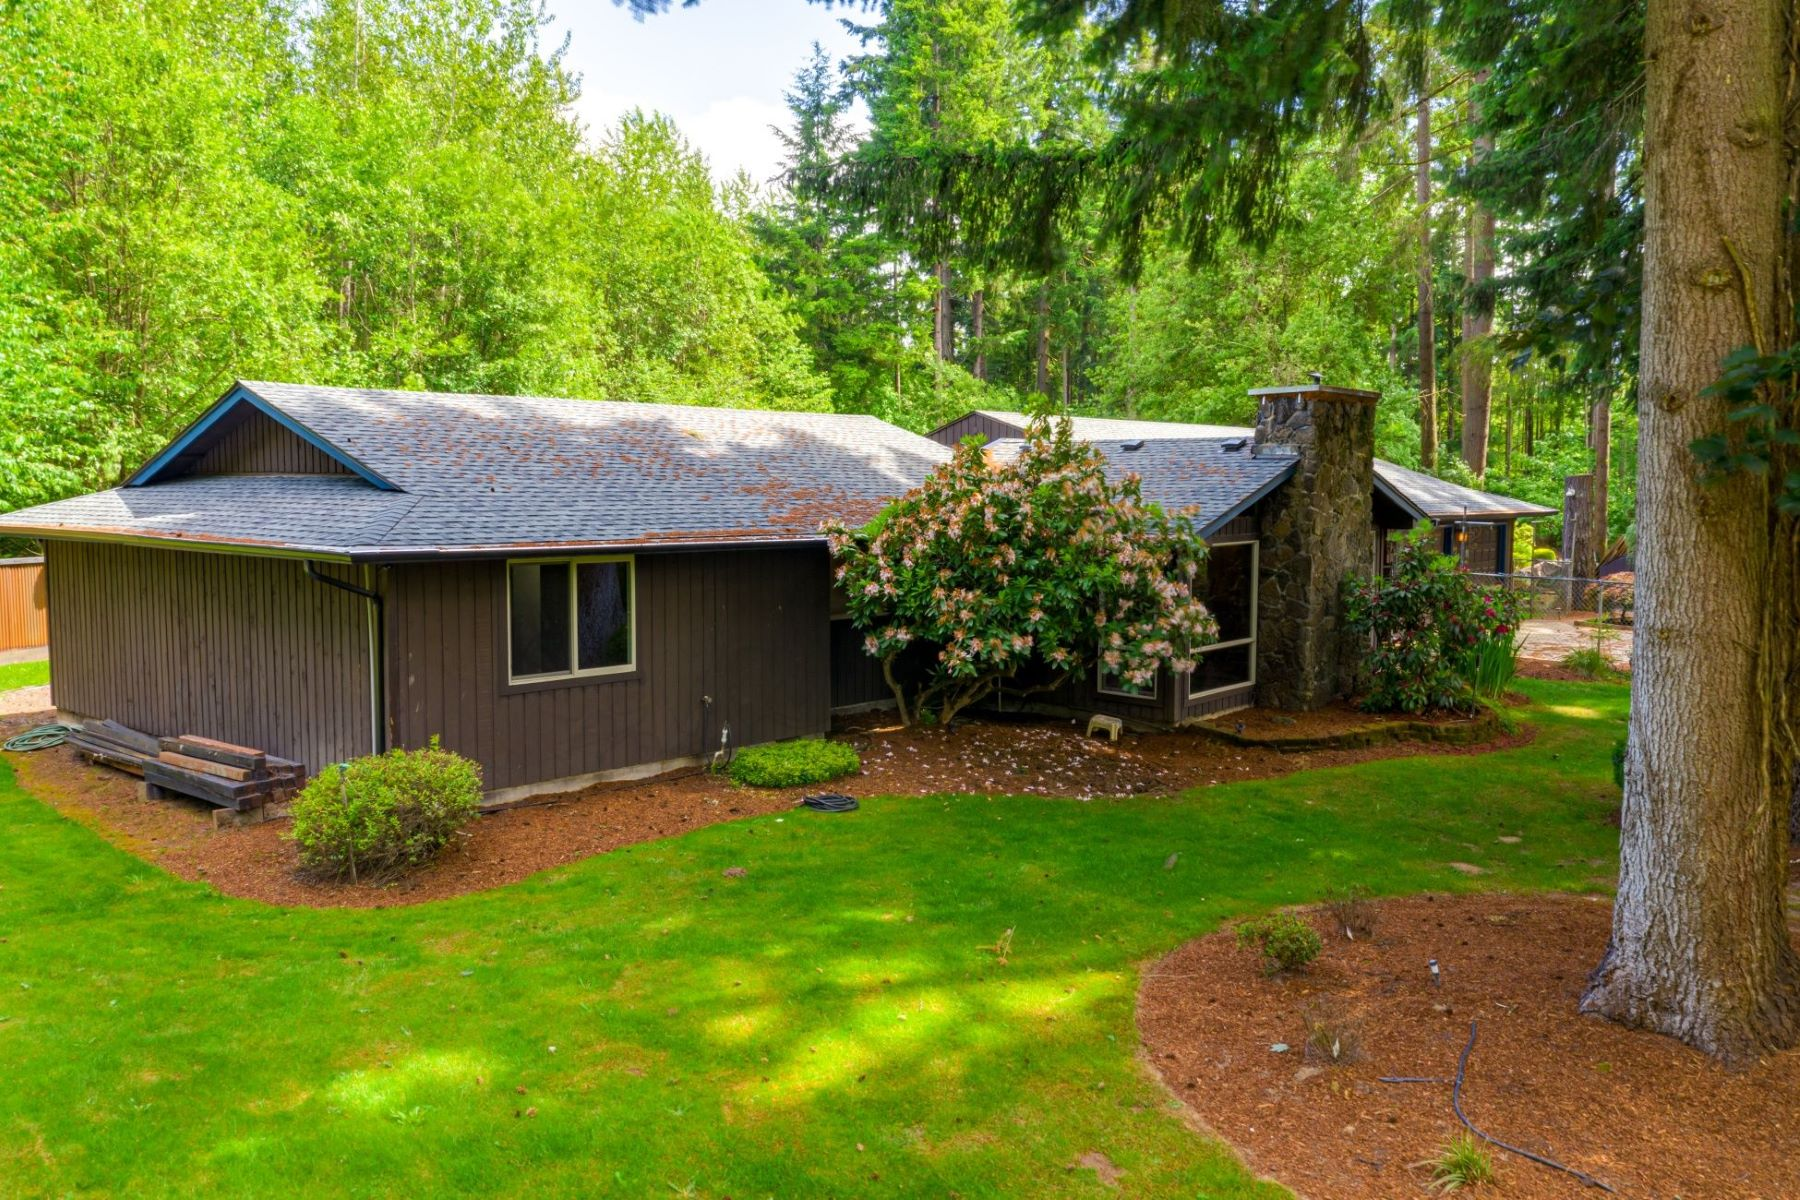 Other Residential Homes for Sale at 7401 NE 219TH ST Battle Ground, WA 98604 7401 NE 219TH ST Battle Ground, Washington 98604 United States